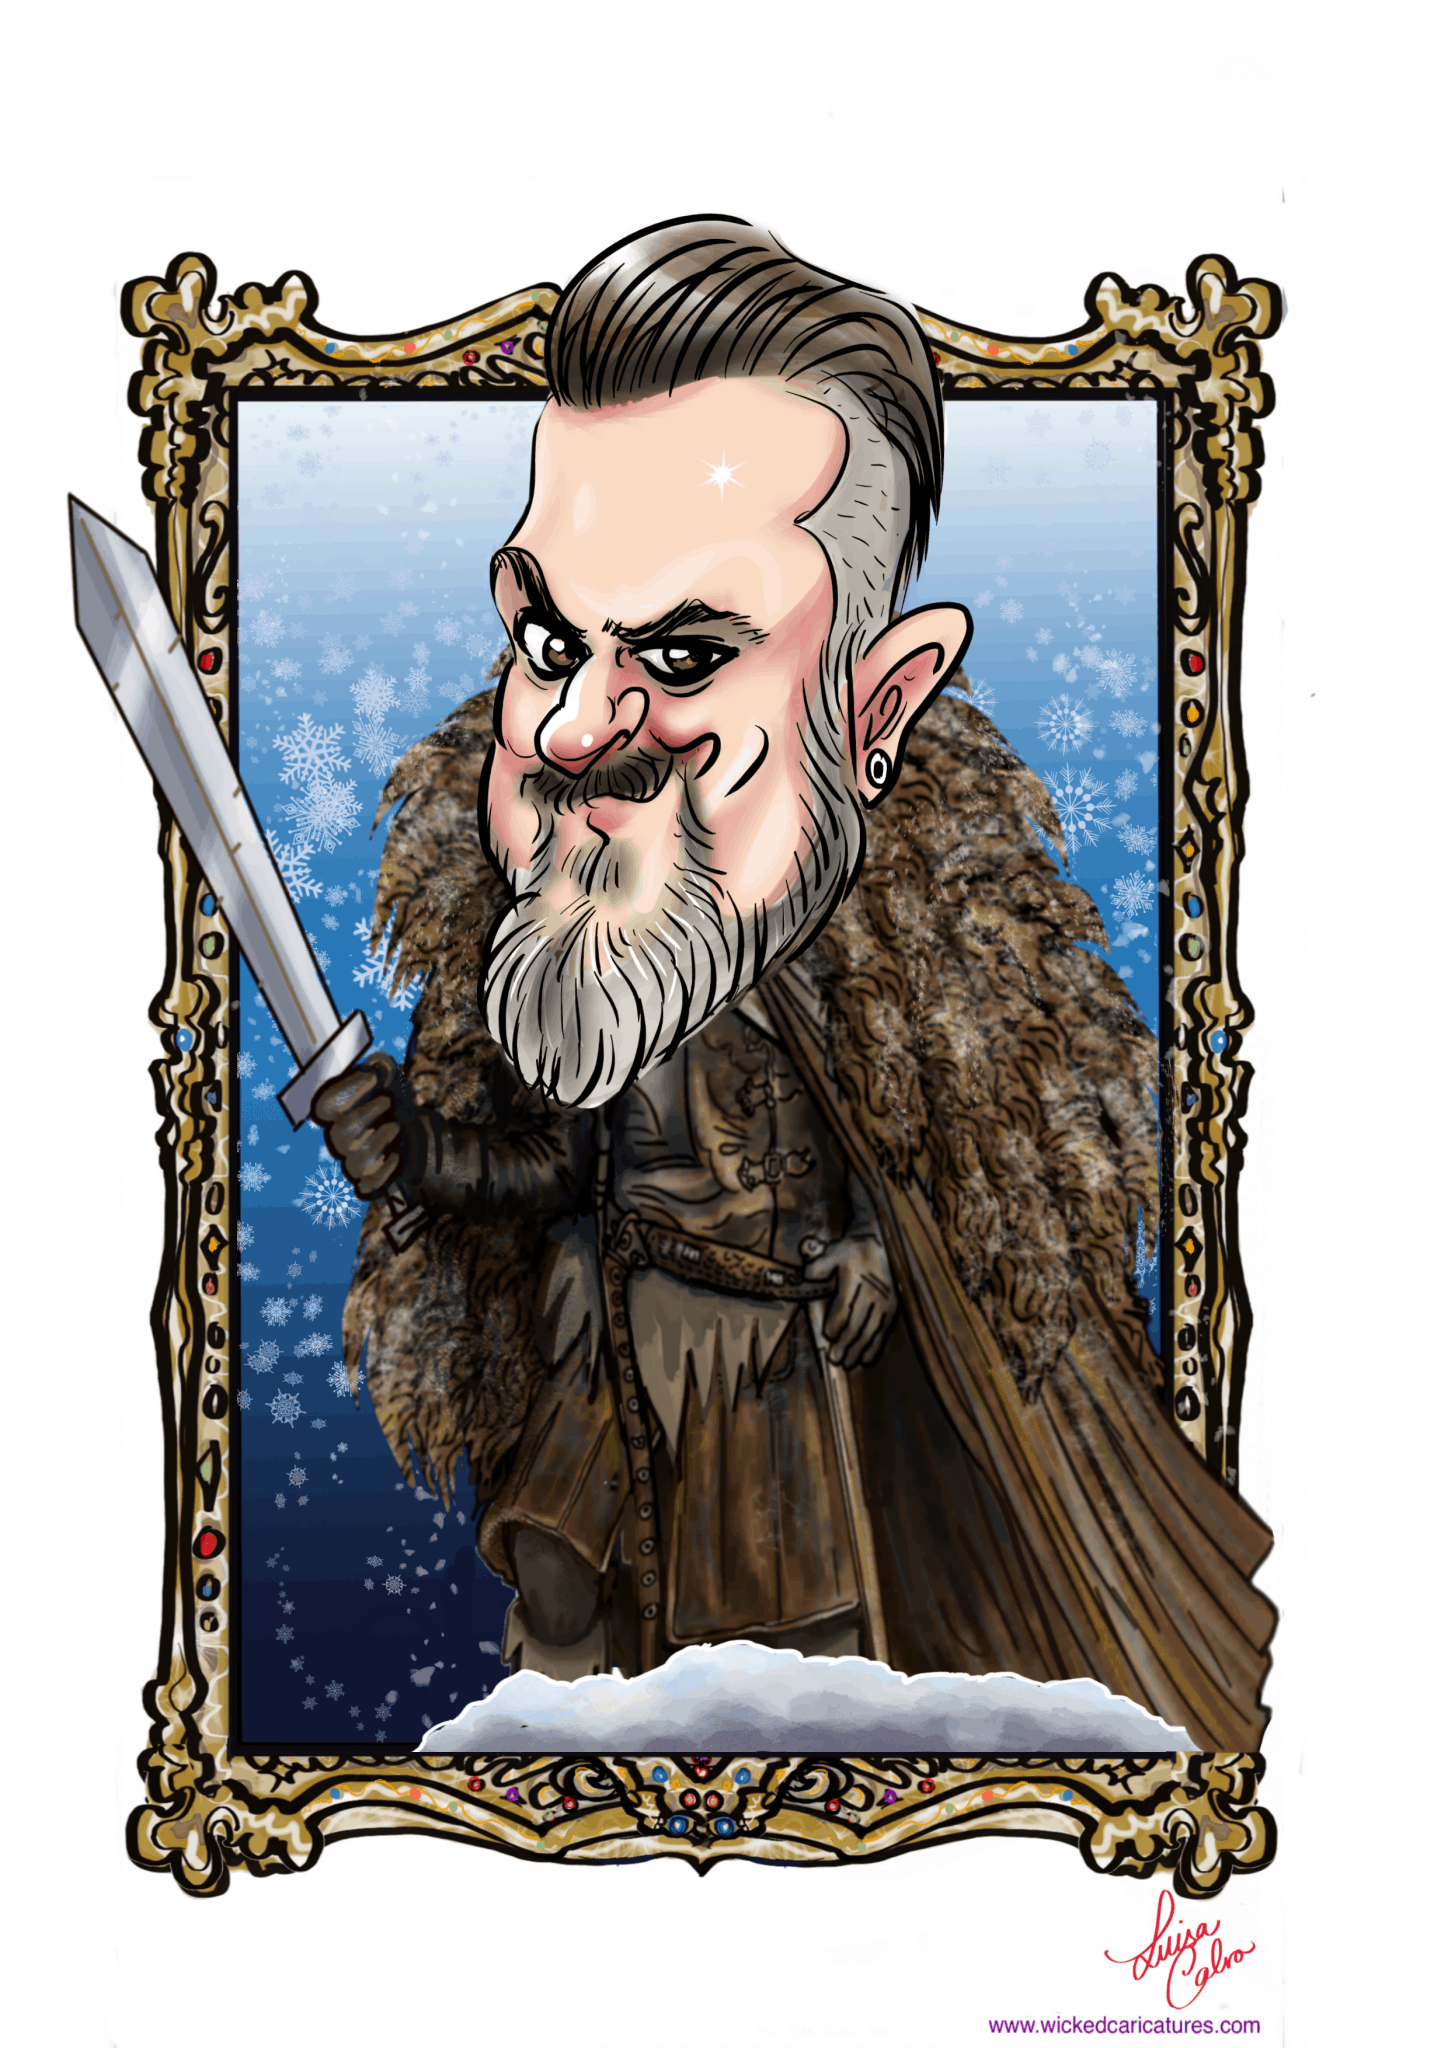 Gameof Thrones themed Digital caricatures by Luisa Calvo for Cisco in Brighton